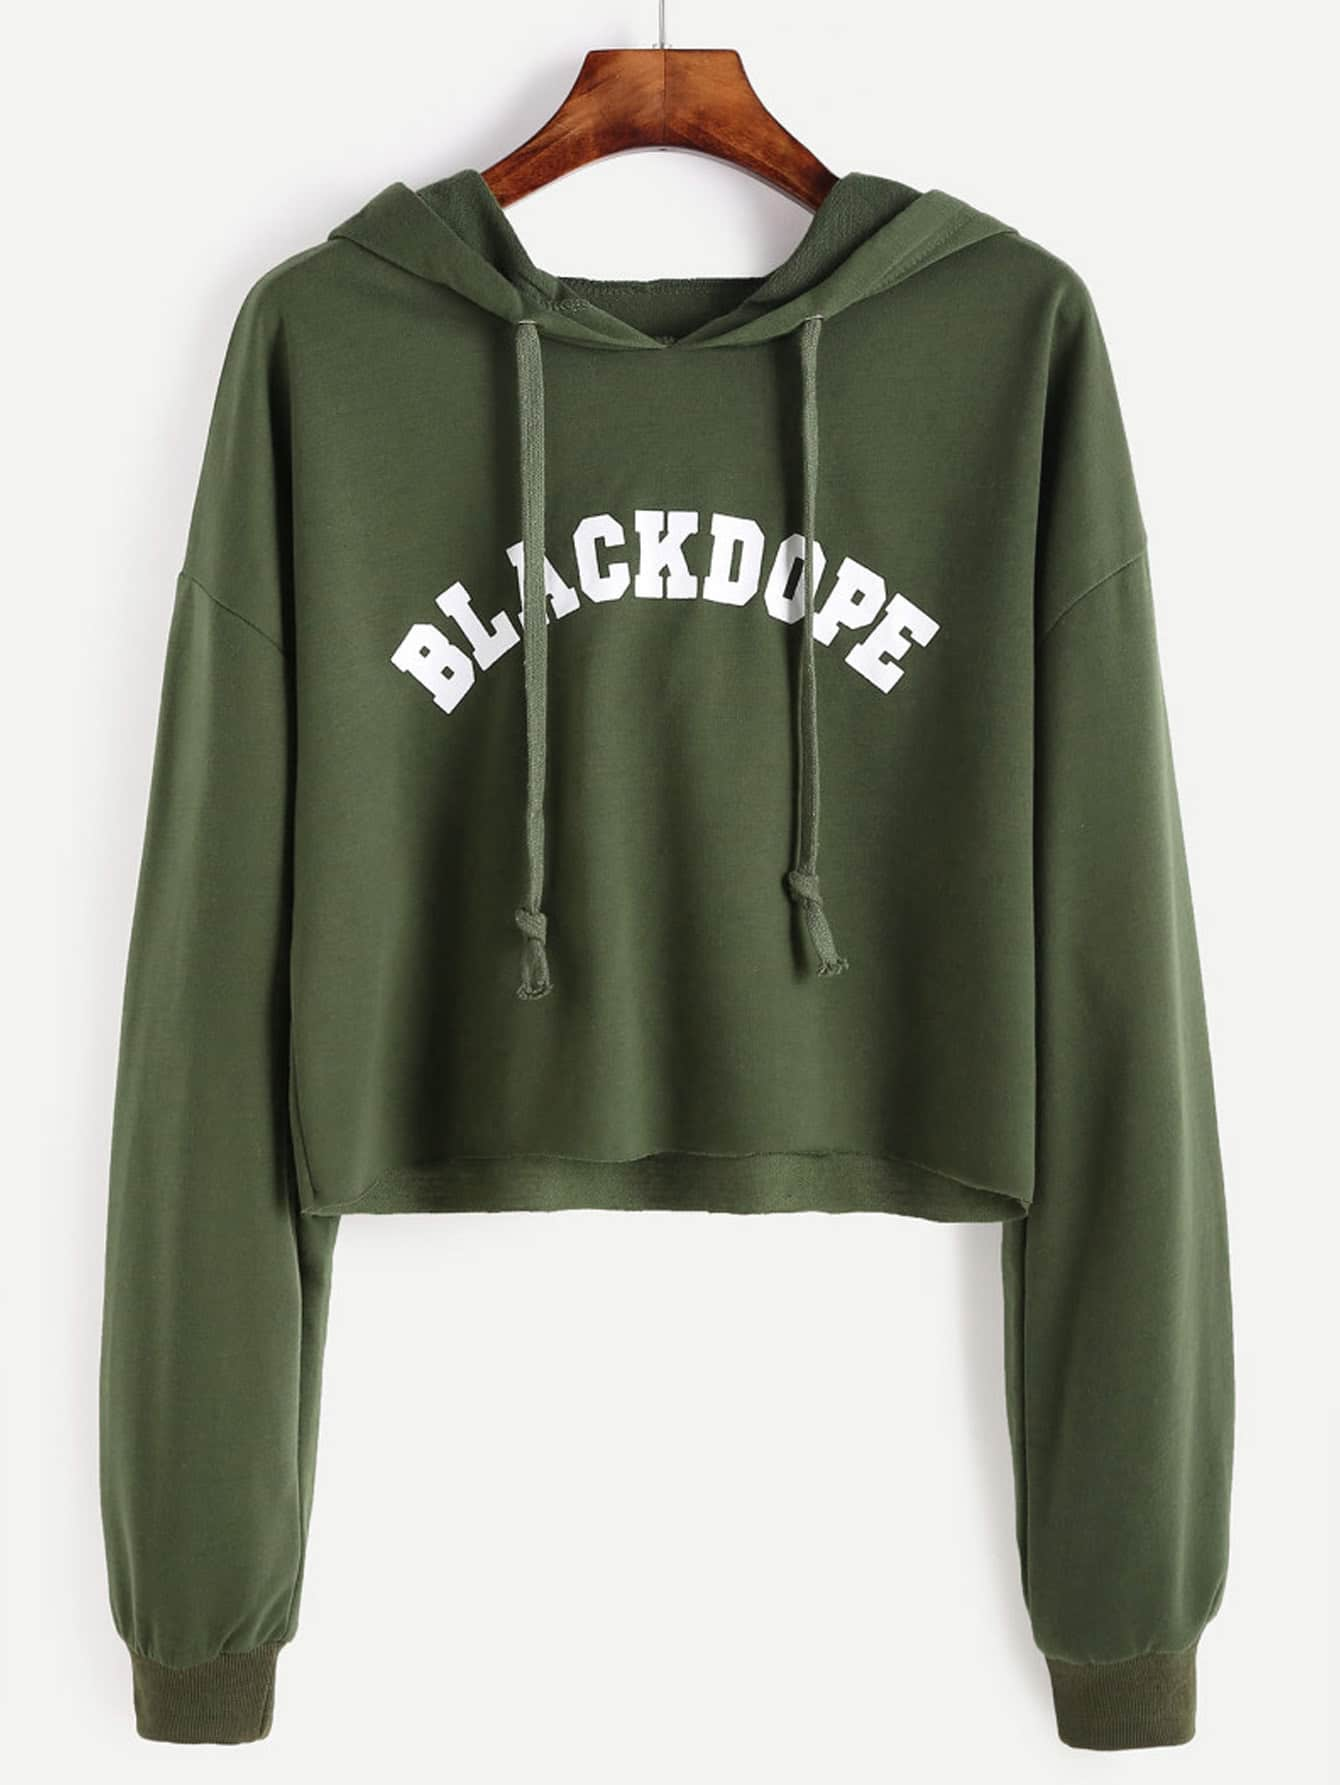 Drop Shoulder Letter Print Raw Hem Crop Hoodie куртка mavi 110081 24312